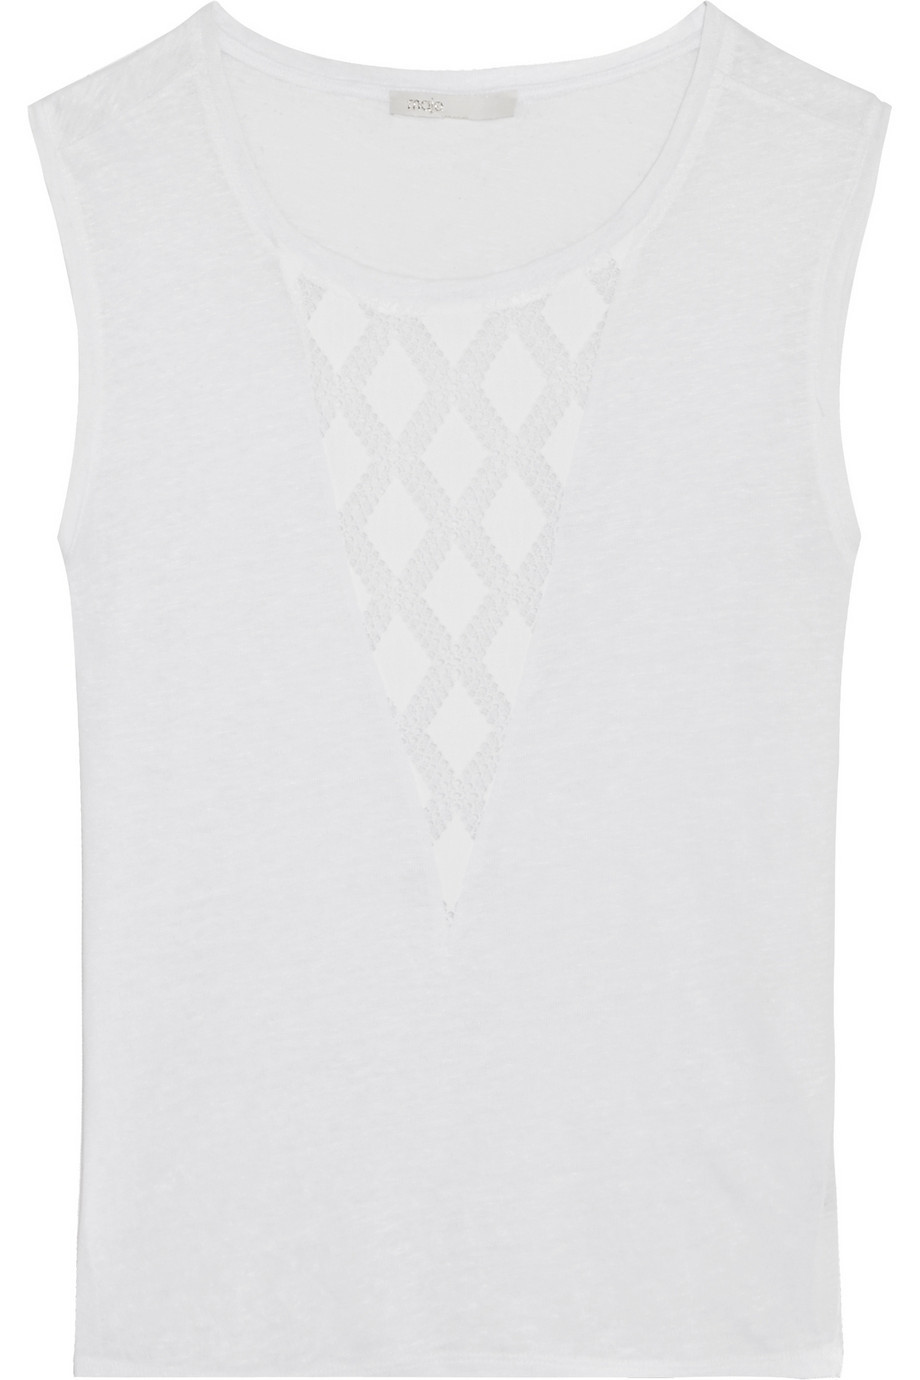 Tao Embroidered Georgette Paneled Linen Top White - neckline: round neck; sleeve style: sleeveless; predominant colour: white; occasions: casual; length: standard; style: top; fibres: linen - 100%; fit: body skimming; sleeve length: sleeveless; texture group: linen; pattern type: fabric; pattern: patterned/print; season: s/s 2016; wardrobe: highlight